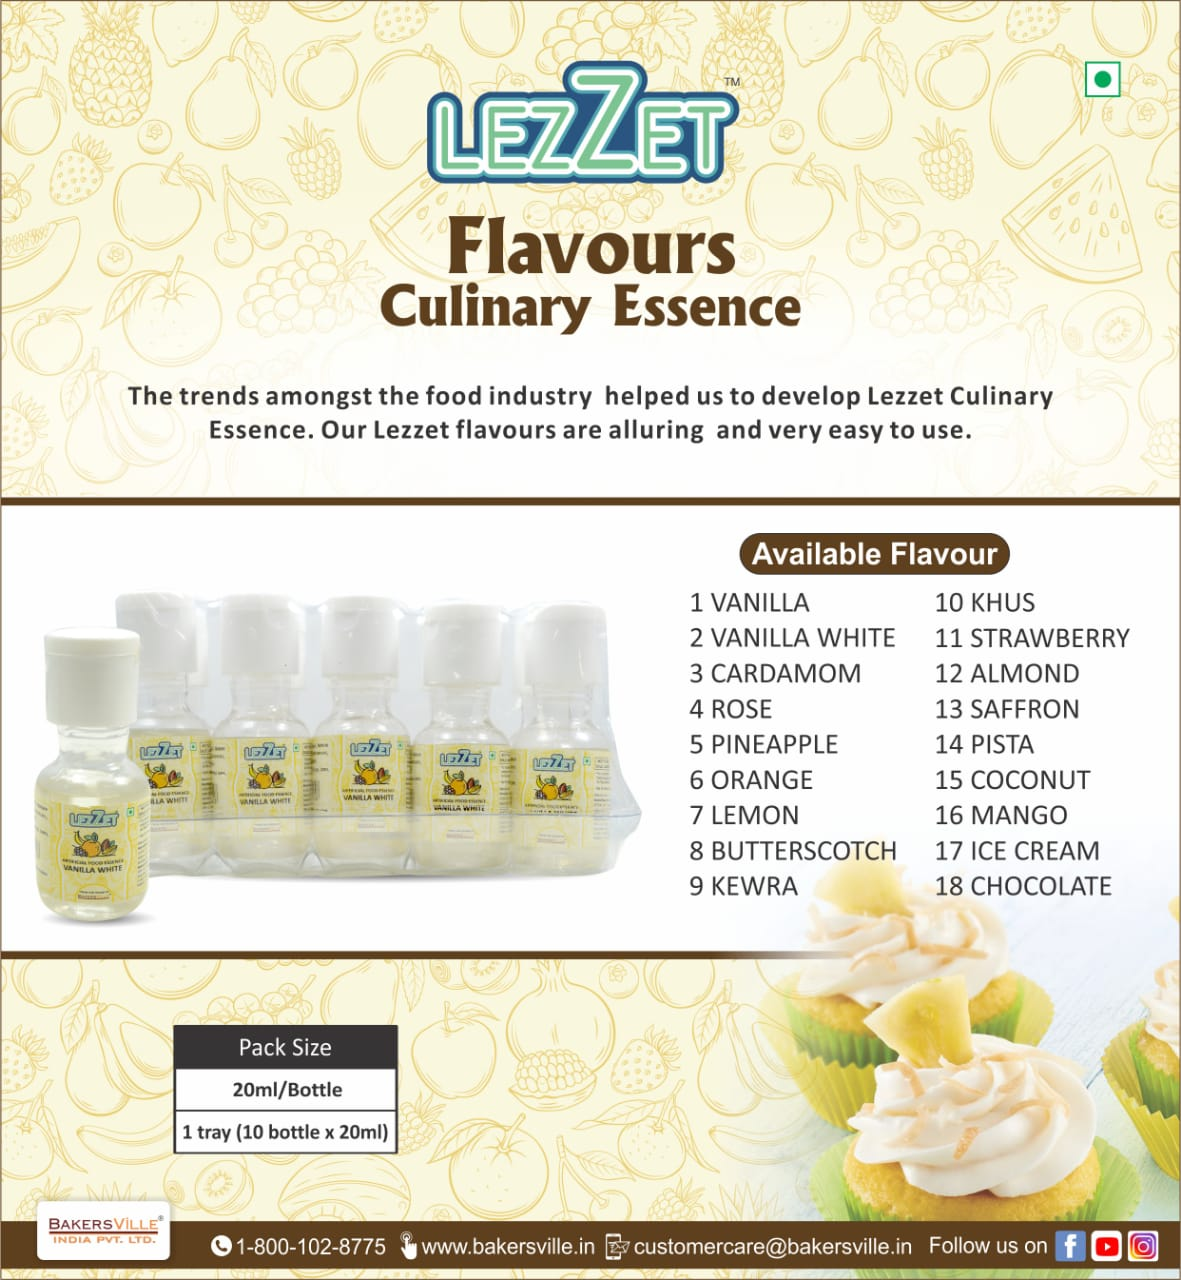 17% Off Lezzet Artificial Food Essence Kewara 20 Ml Cake Ingredients - Divena In